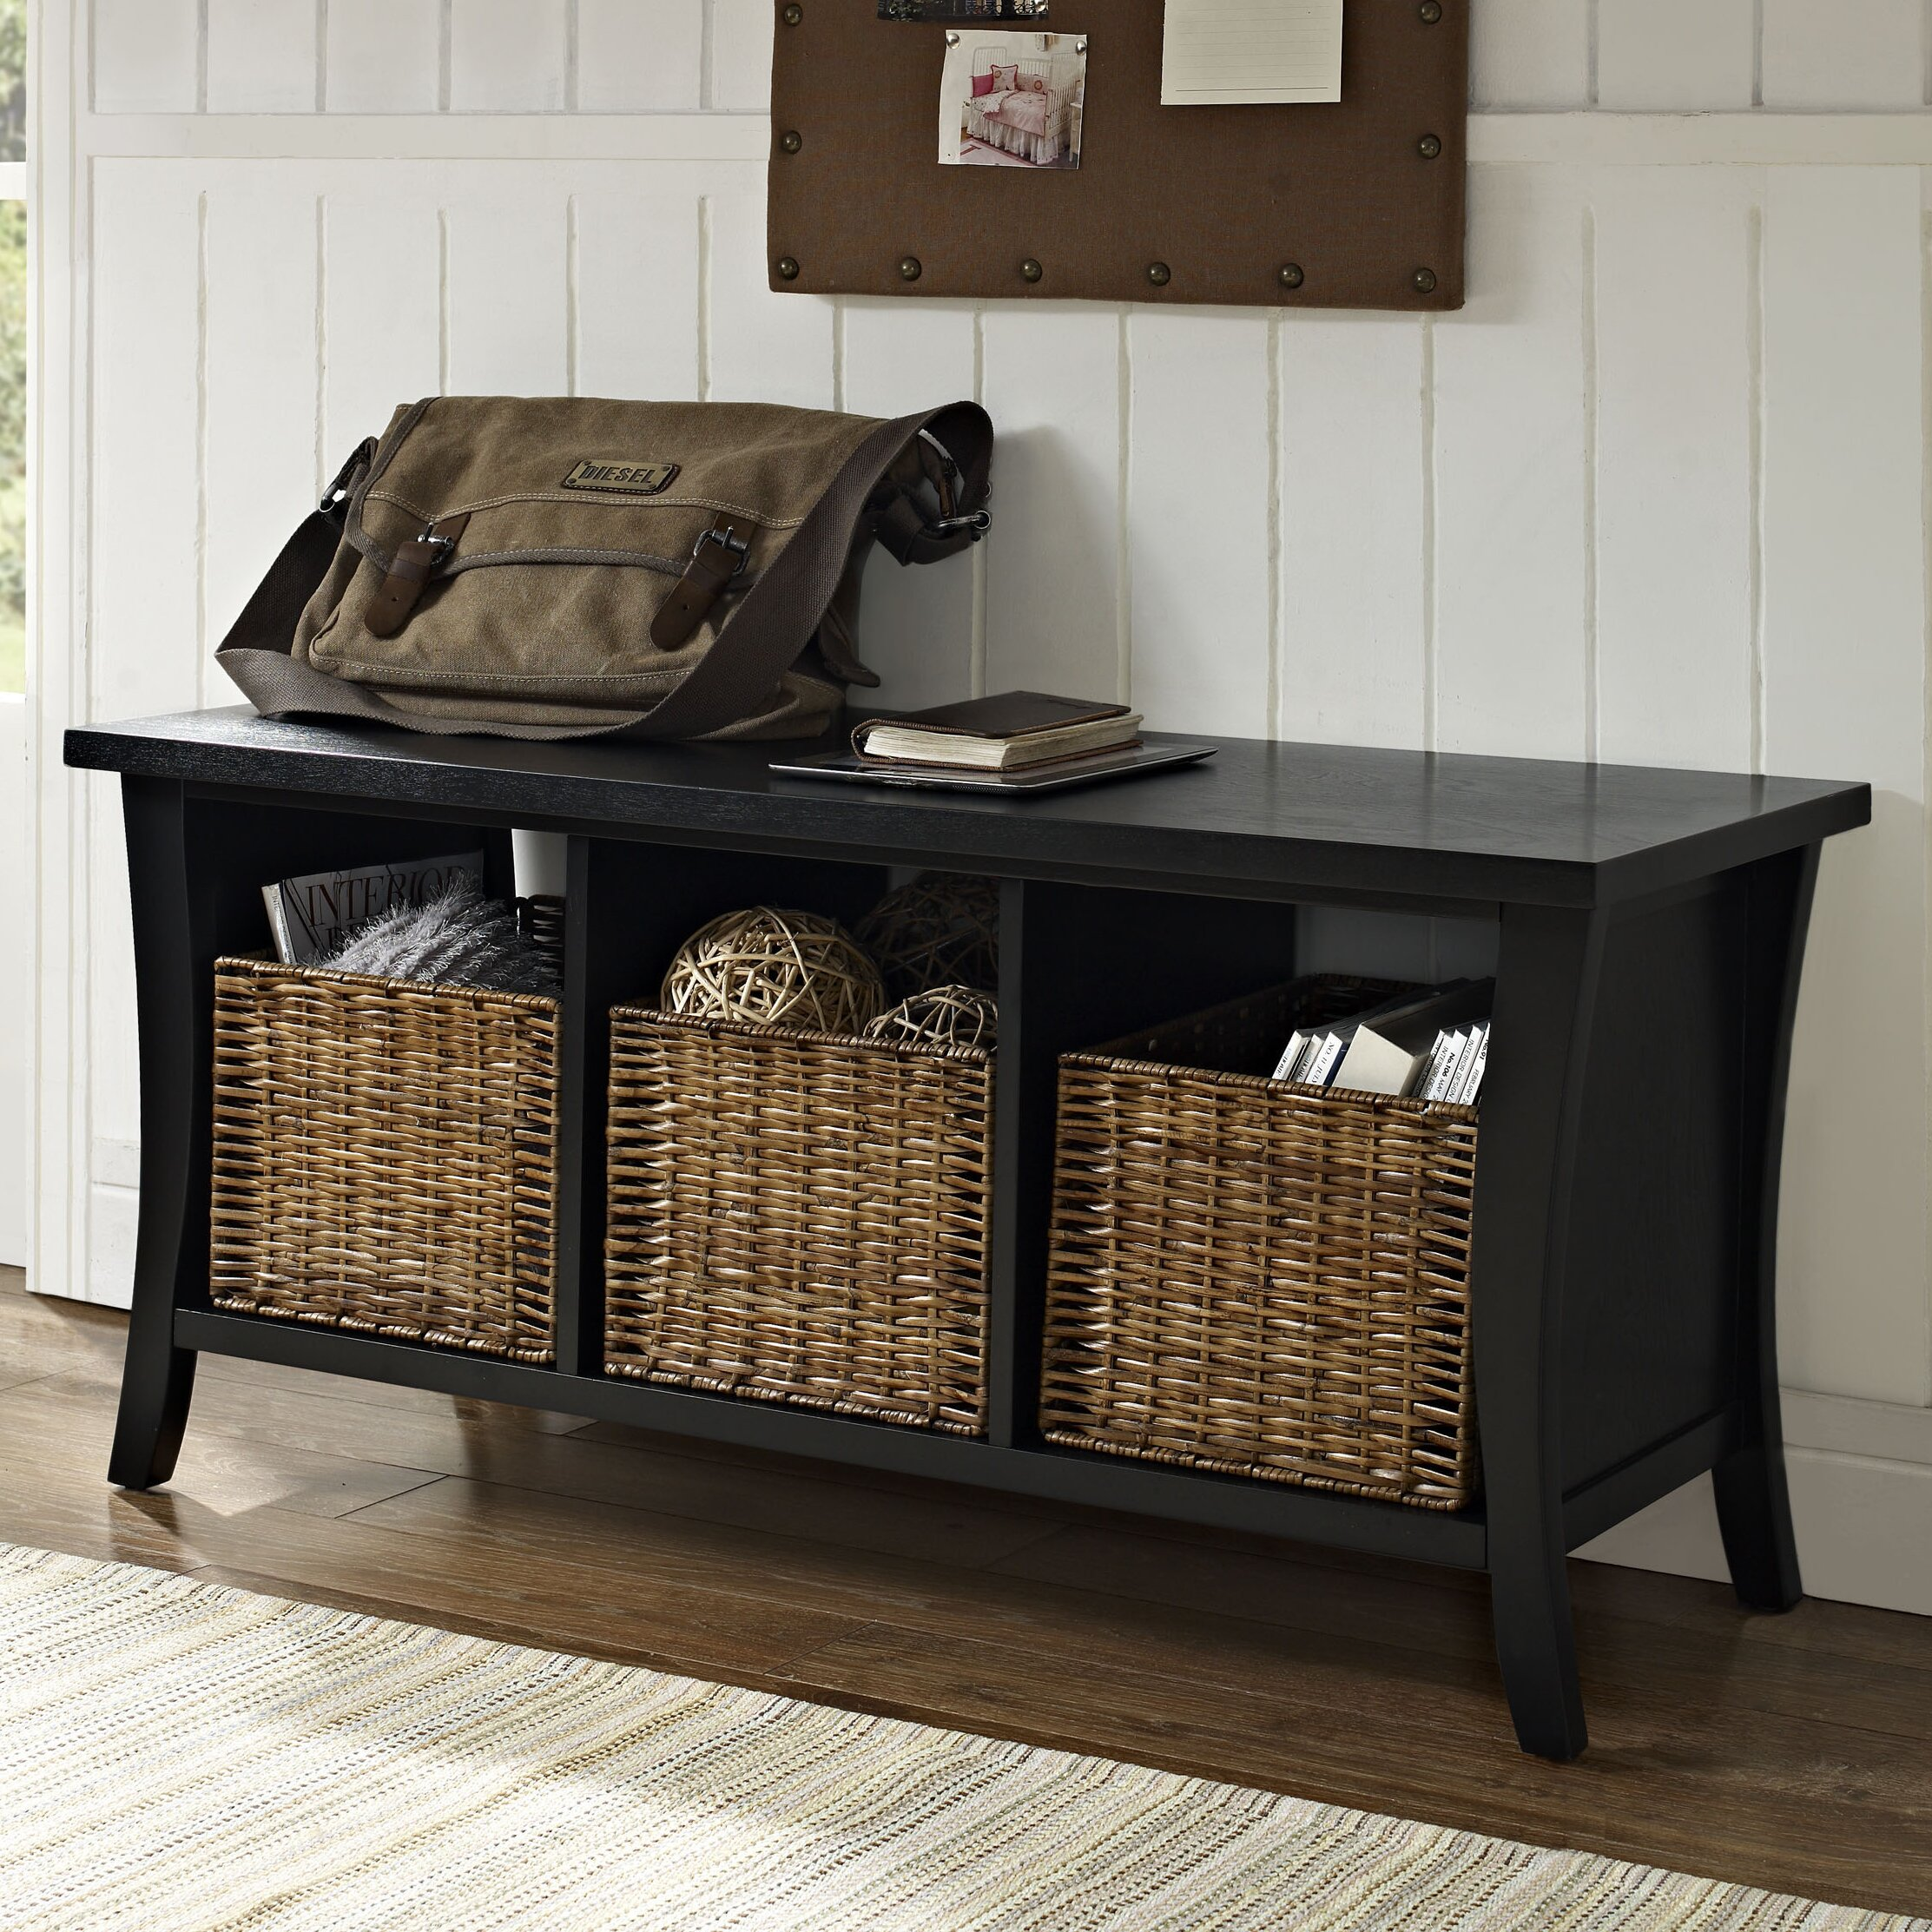 Beachcrest Home Lewisetta Entryway Storage Bench Reviews Wayfair